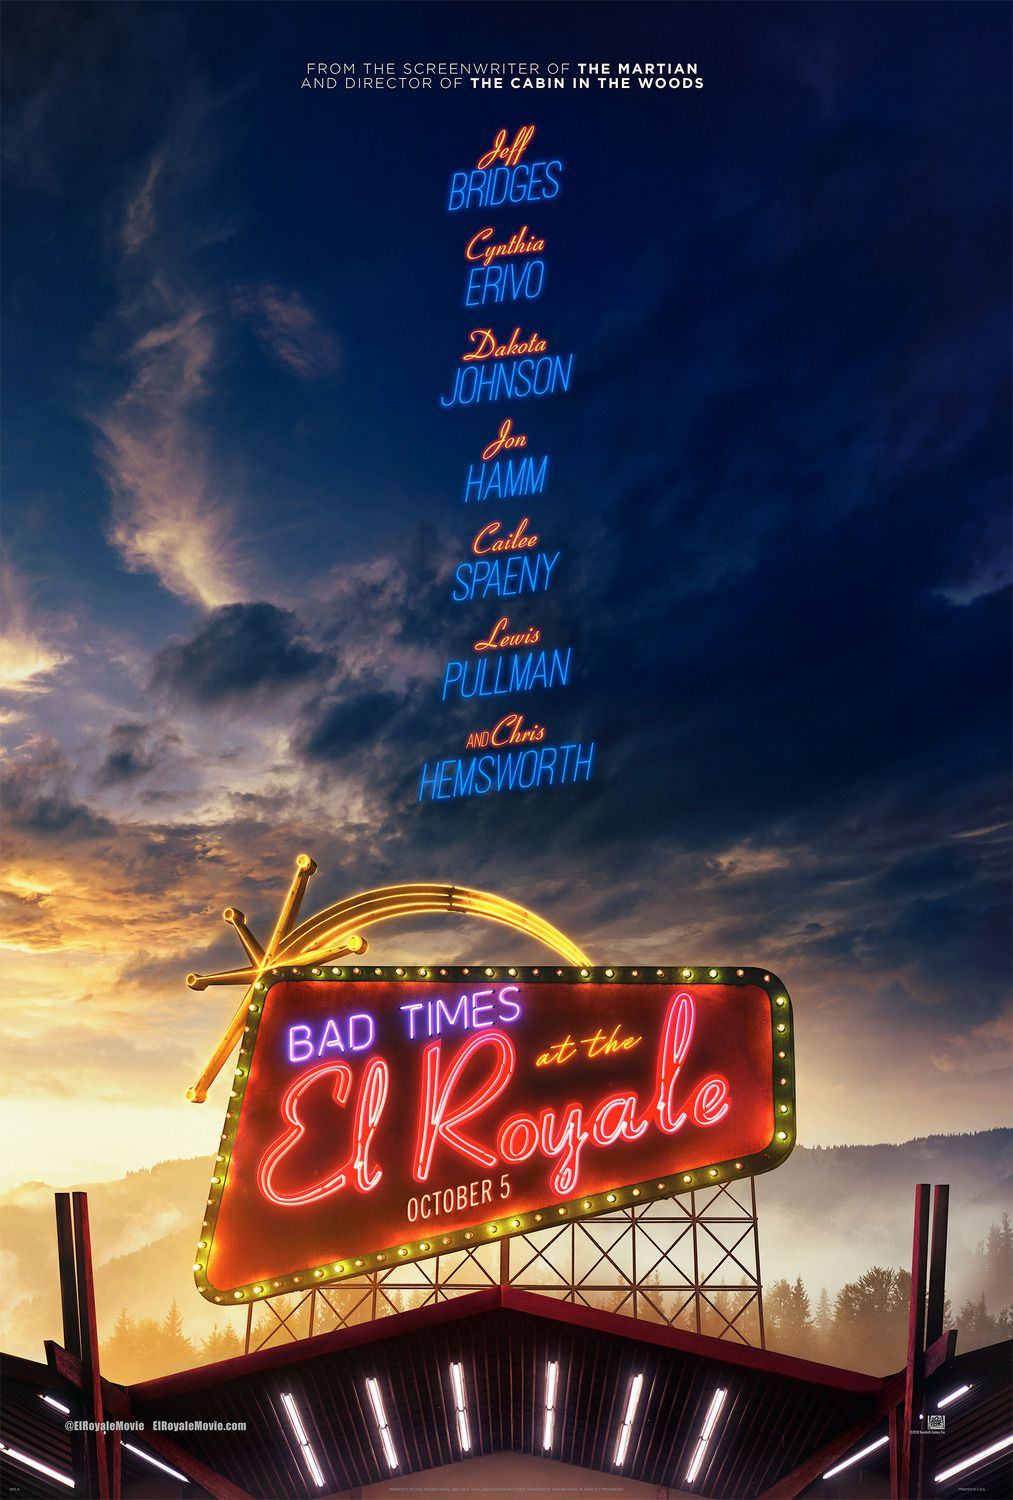 Bad Times at the El Royale (2018) Cast: Jeff Bridges, Chris Hemsworth, Cynthia Erivo, Dakota Johnson, John Hamm, Cailer Spaeny, Lewis Pullman, Nick Offerman - film poster